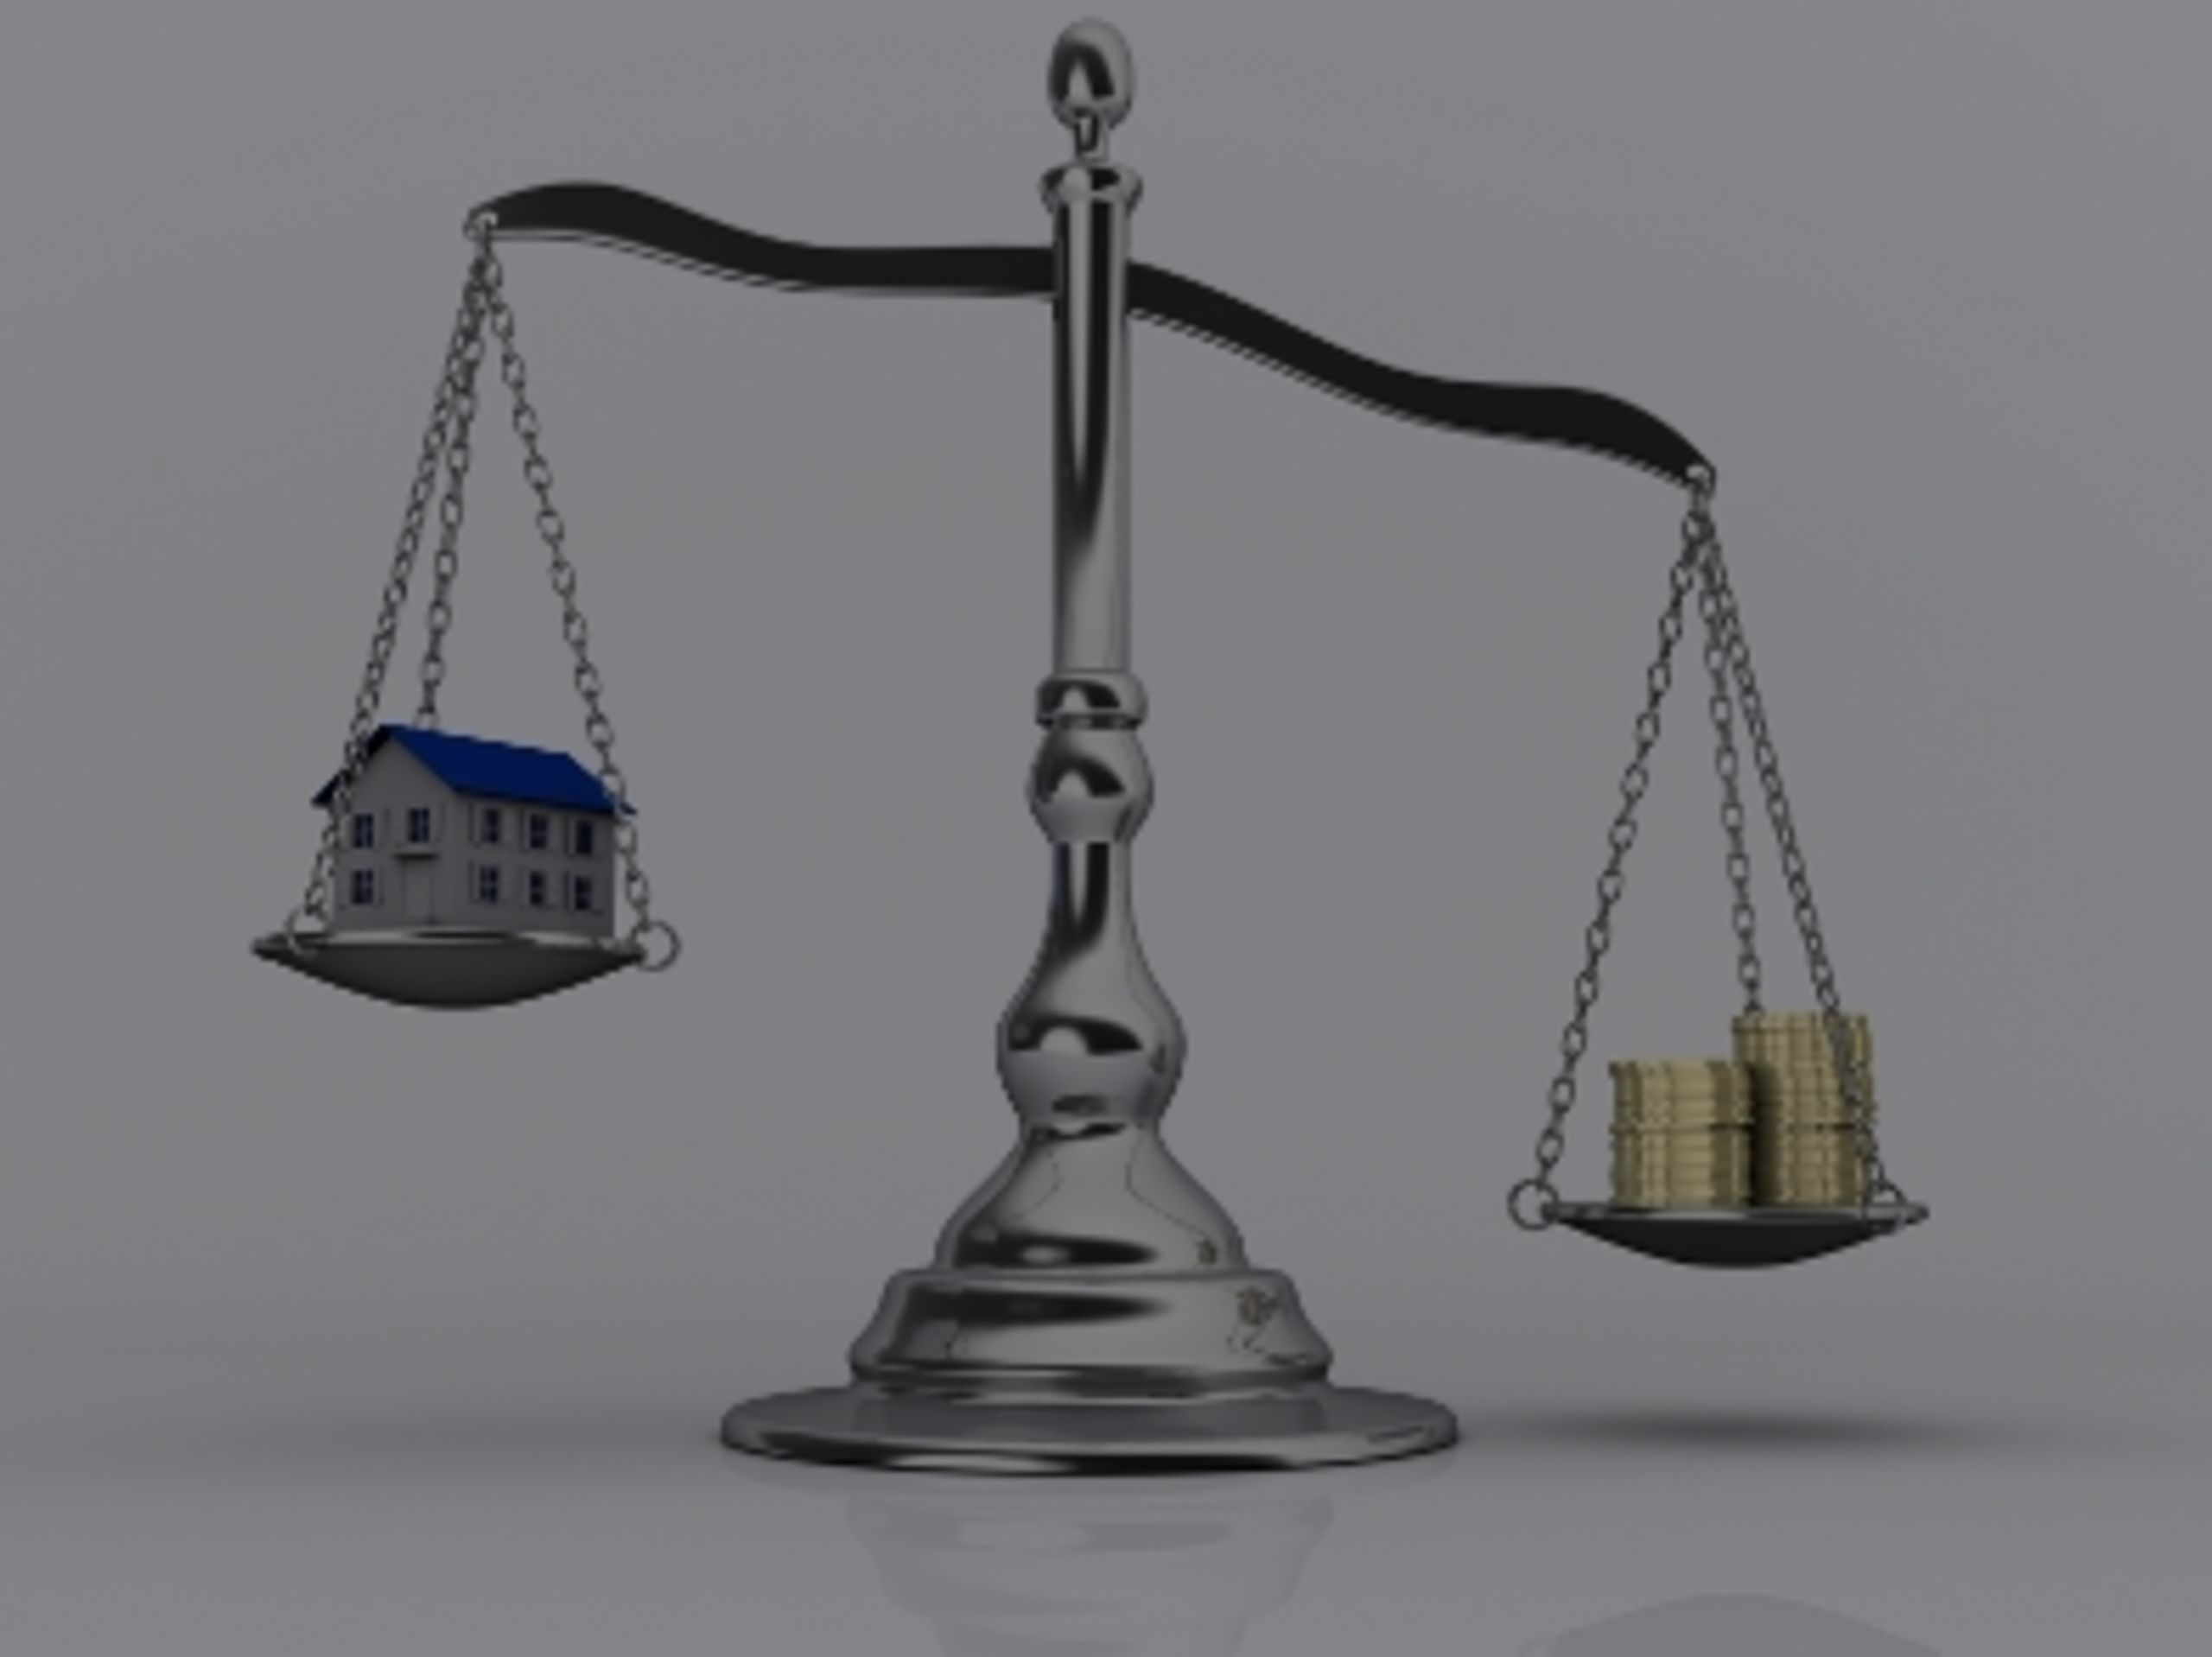 PROBATE AND REAL ESTATE